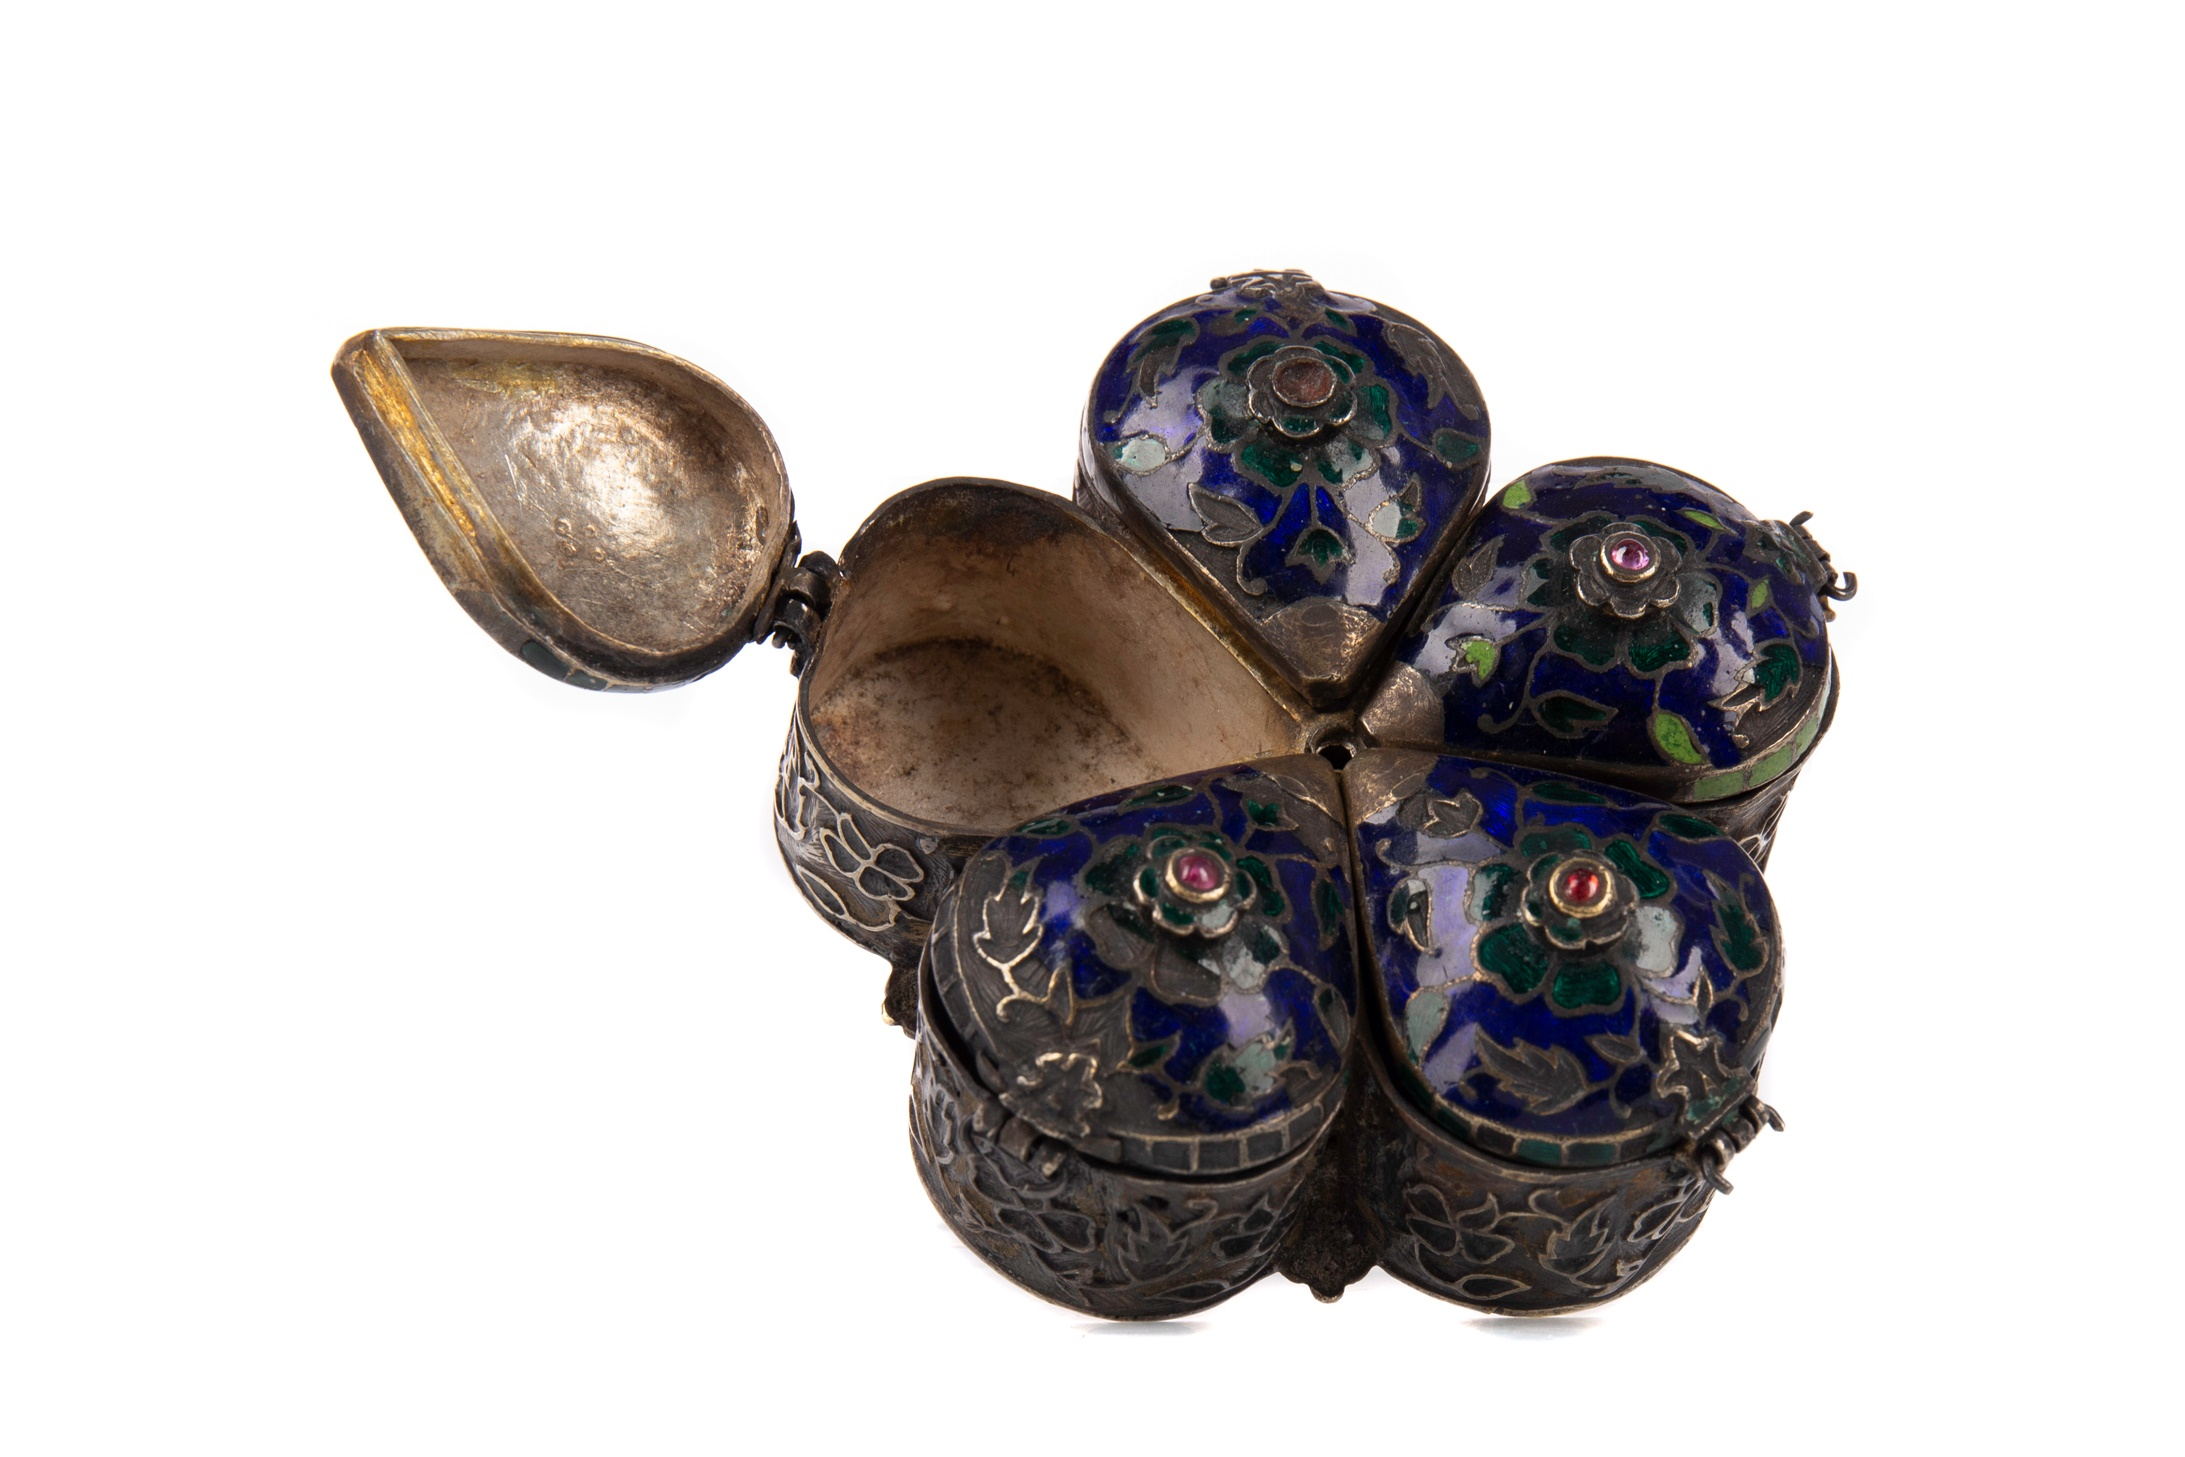 AN EARLY 20TH CENTURY MIDDLE-EASTERN WHITE METAL AND ENAMEL SPICE BOX